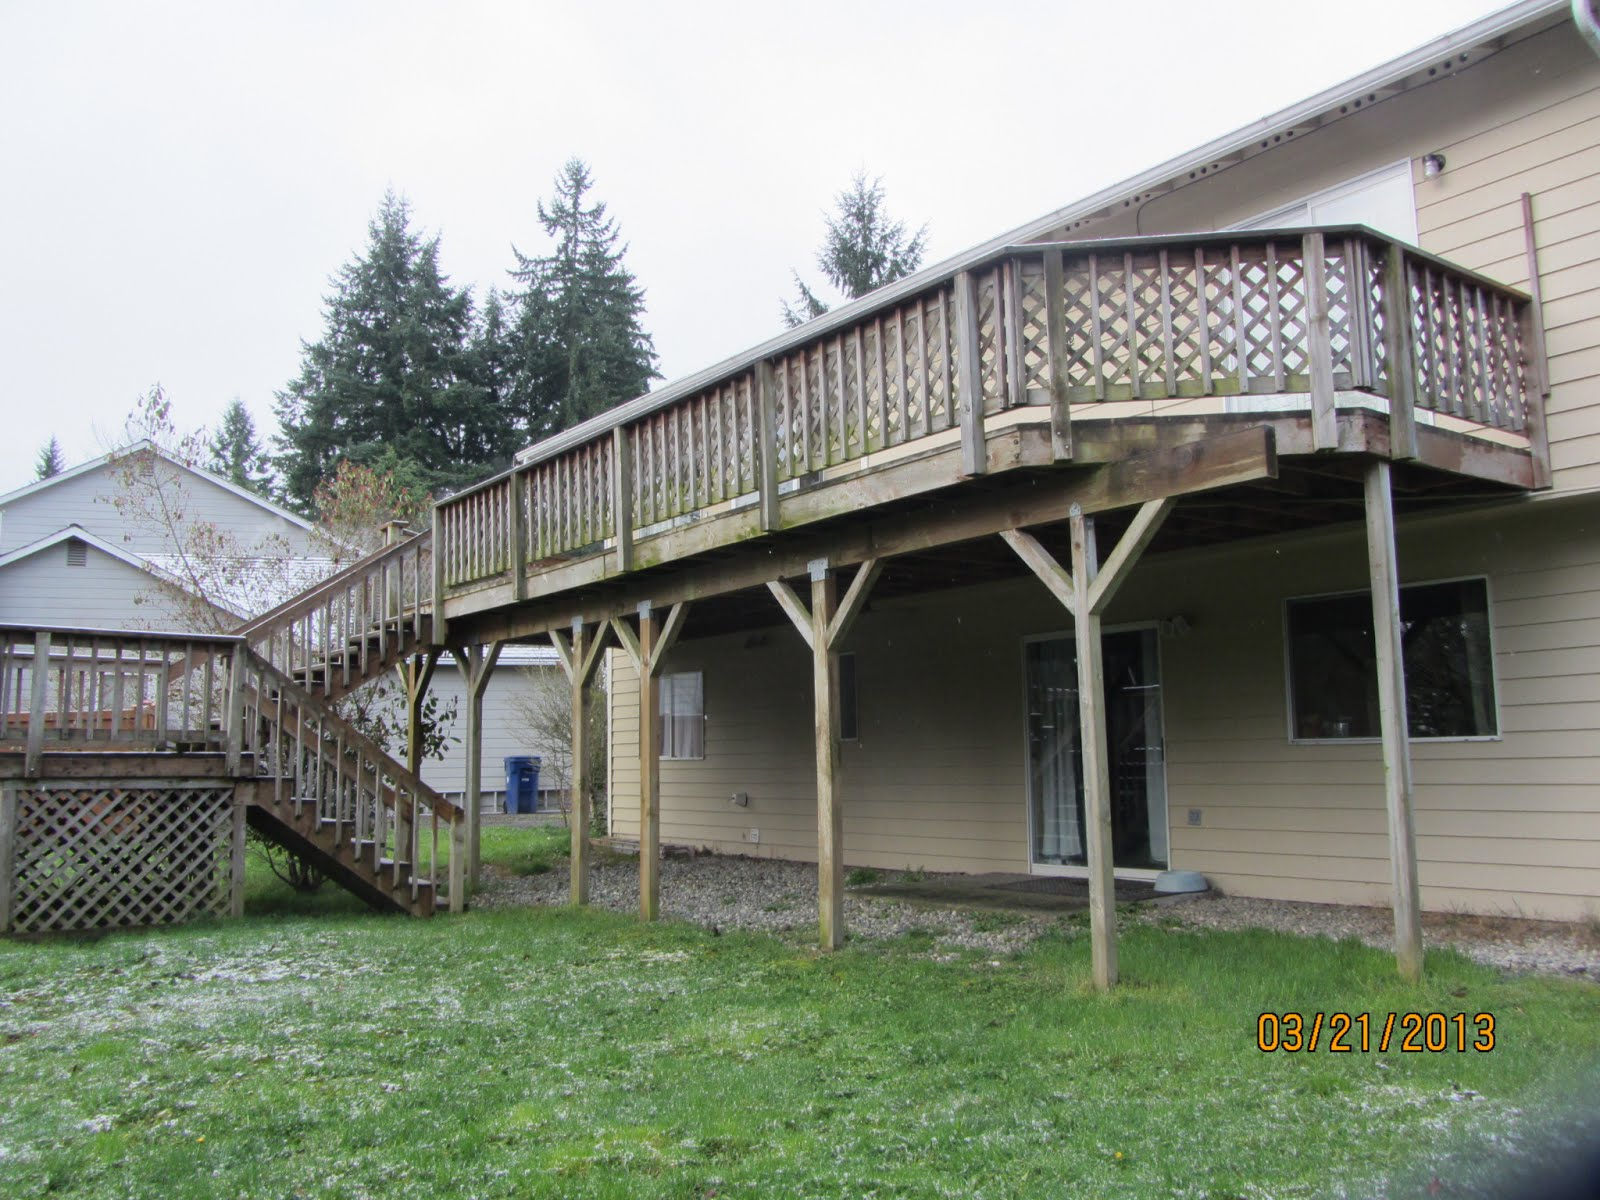 5 br house for sale Kirkland 98033 deck and hot tub